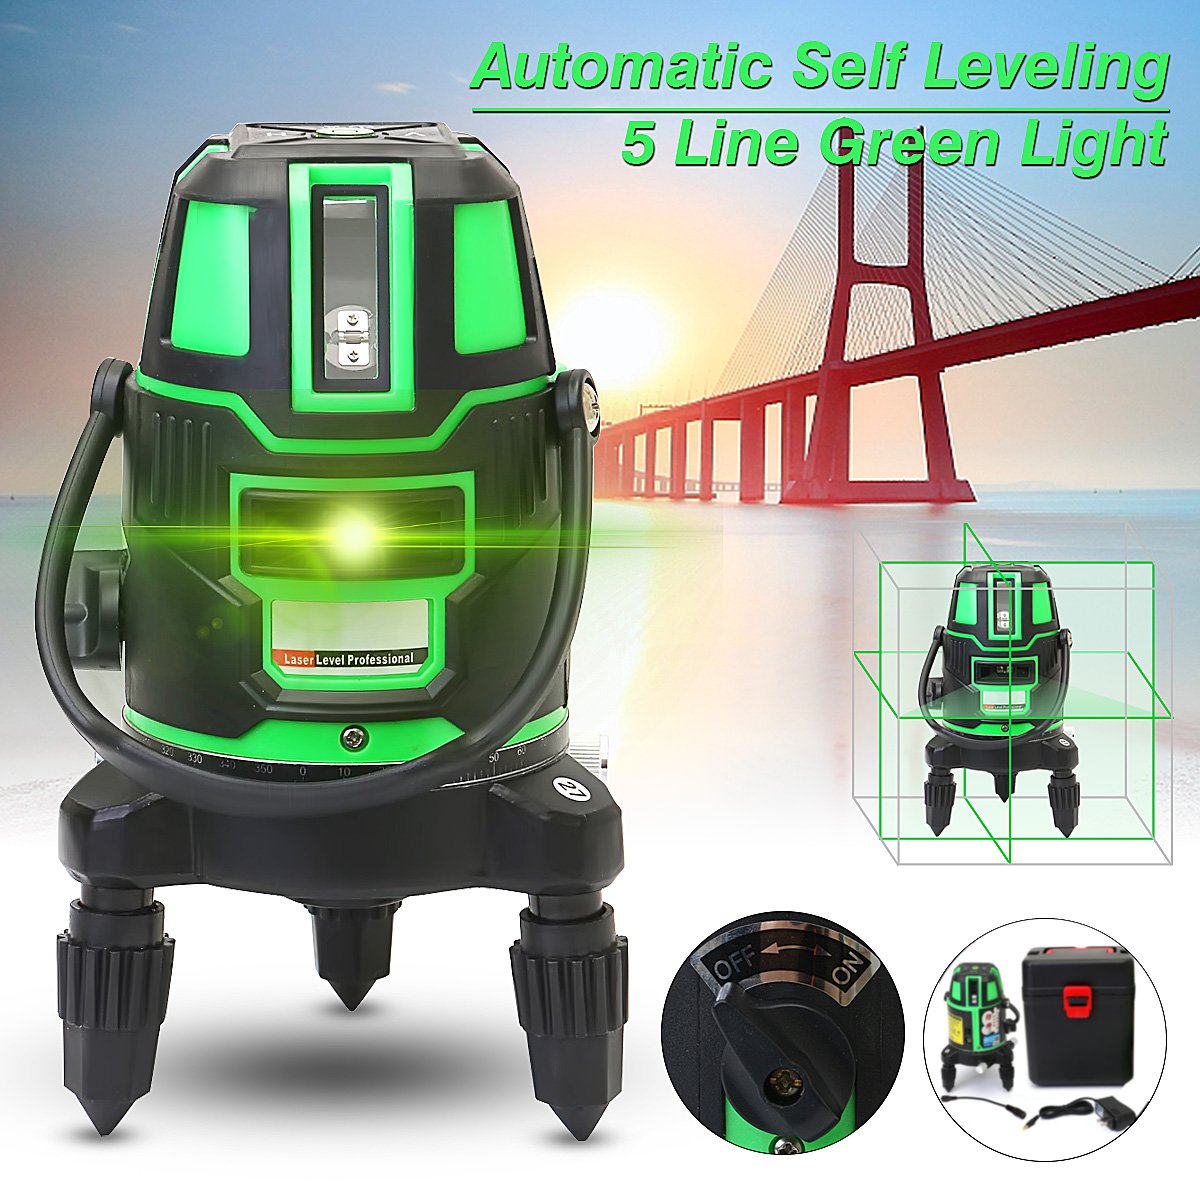 5 Lines 6 Points Green Laser Level 4V 1H 360 Rotary Self Leveling Outdoor Tools Tilt Function встраиваемый счетчик моточасов orbis conta emp ob180800